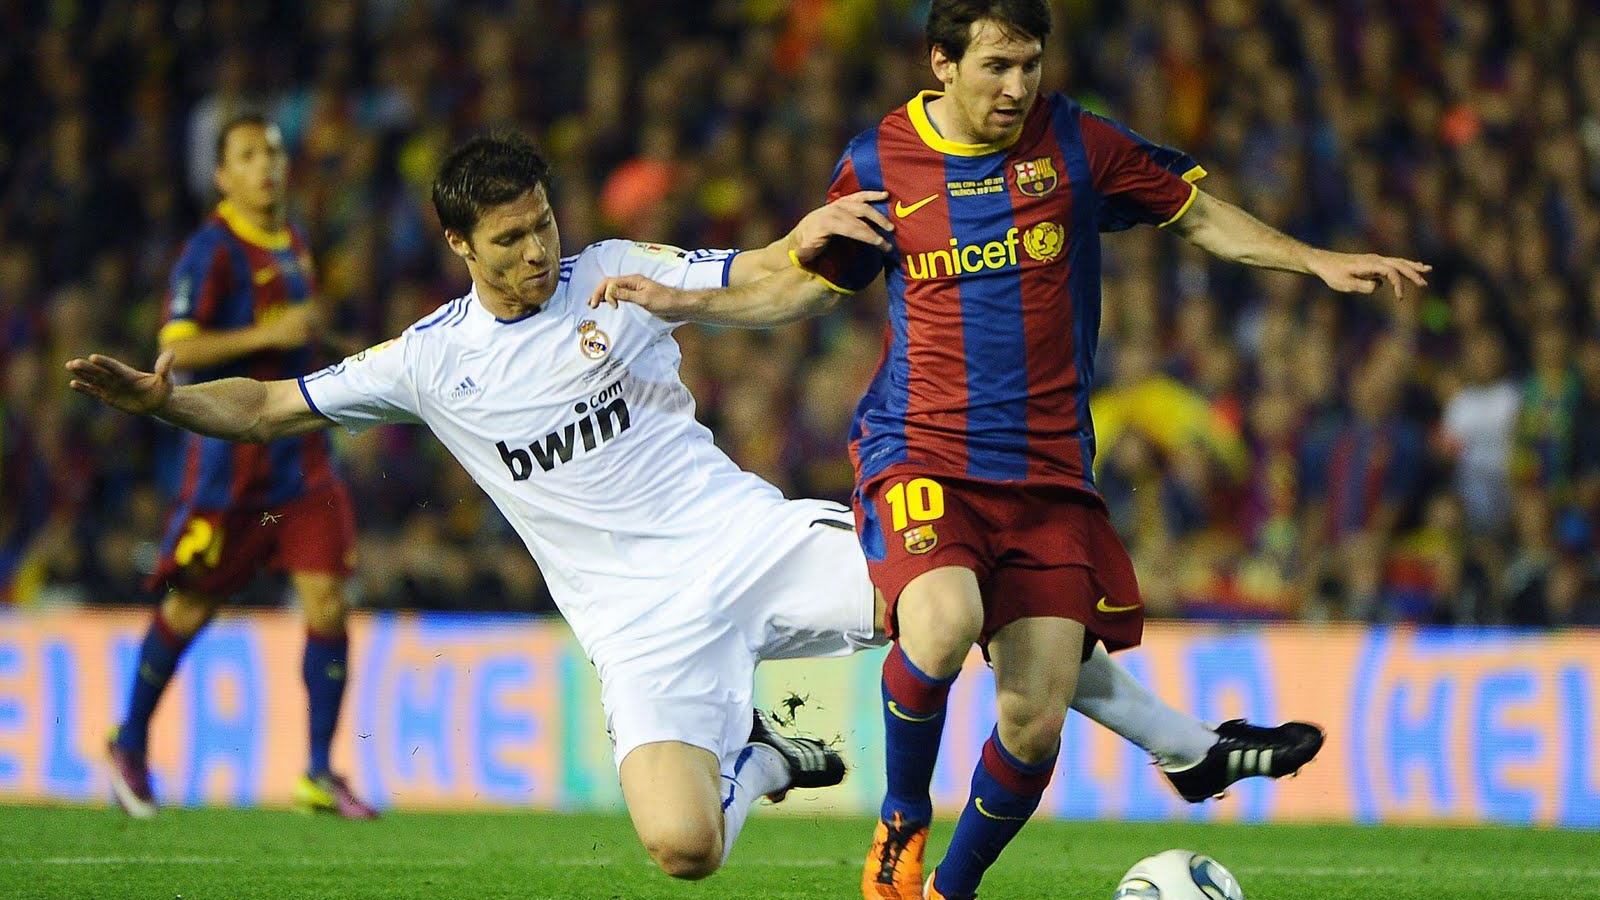 Free Download Wallpapers Backgrounds Lionel Messi Vs Cristiano